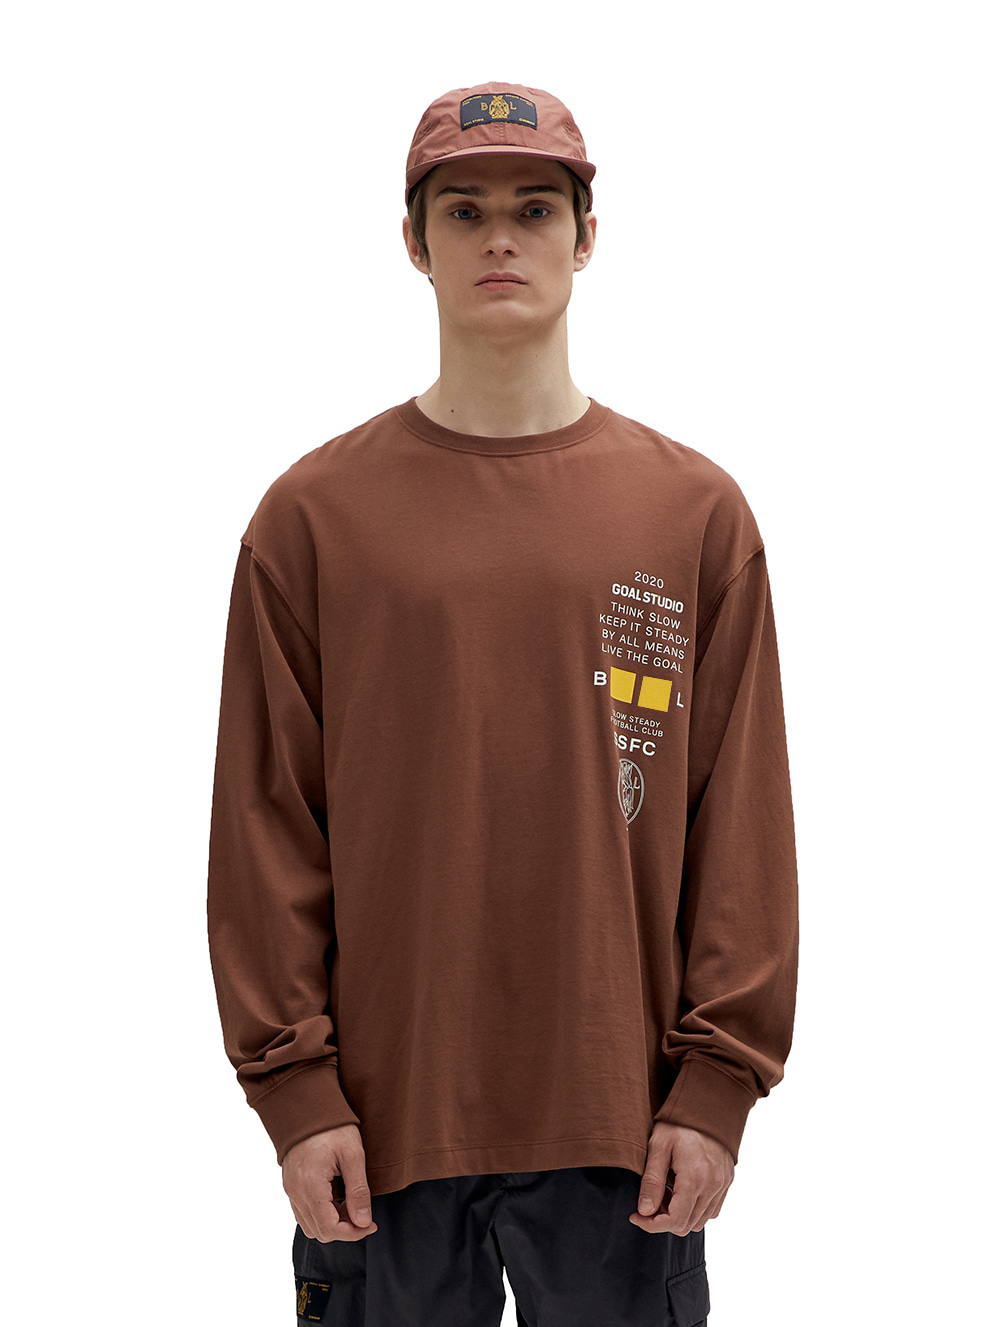 GOALSTUDIO SSFC JERSEY SINGLE LONG SLEEVE - BROWN